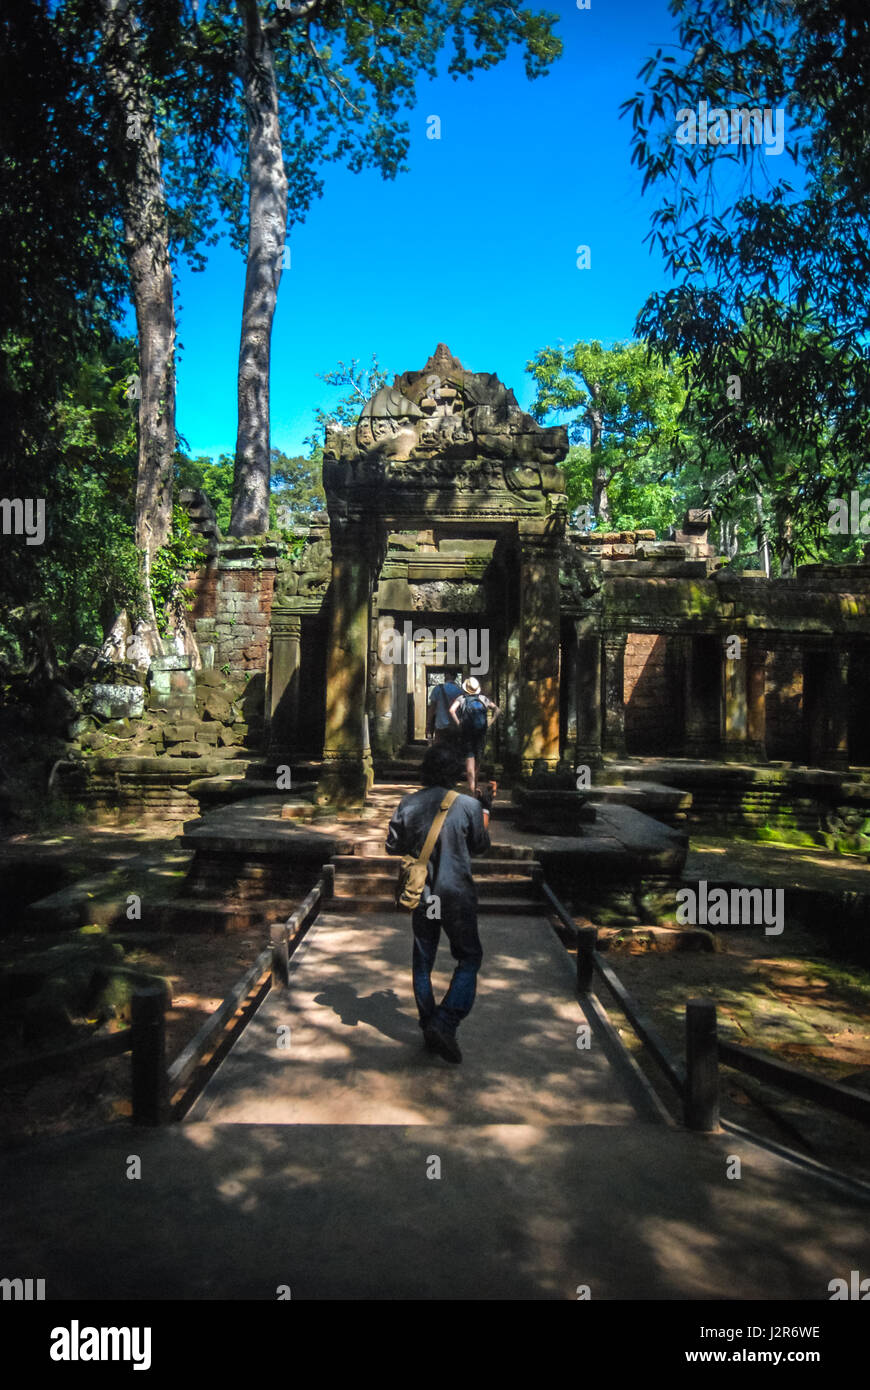 Visitors in front of Ta Prohm Temple in Angkor Complex, Siem Reap, Cambodia. © Anastasia Ika - Stock Image